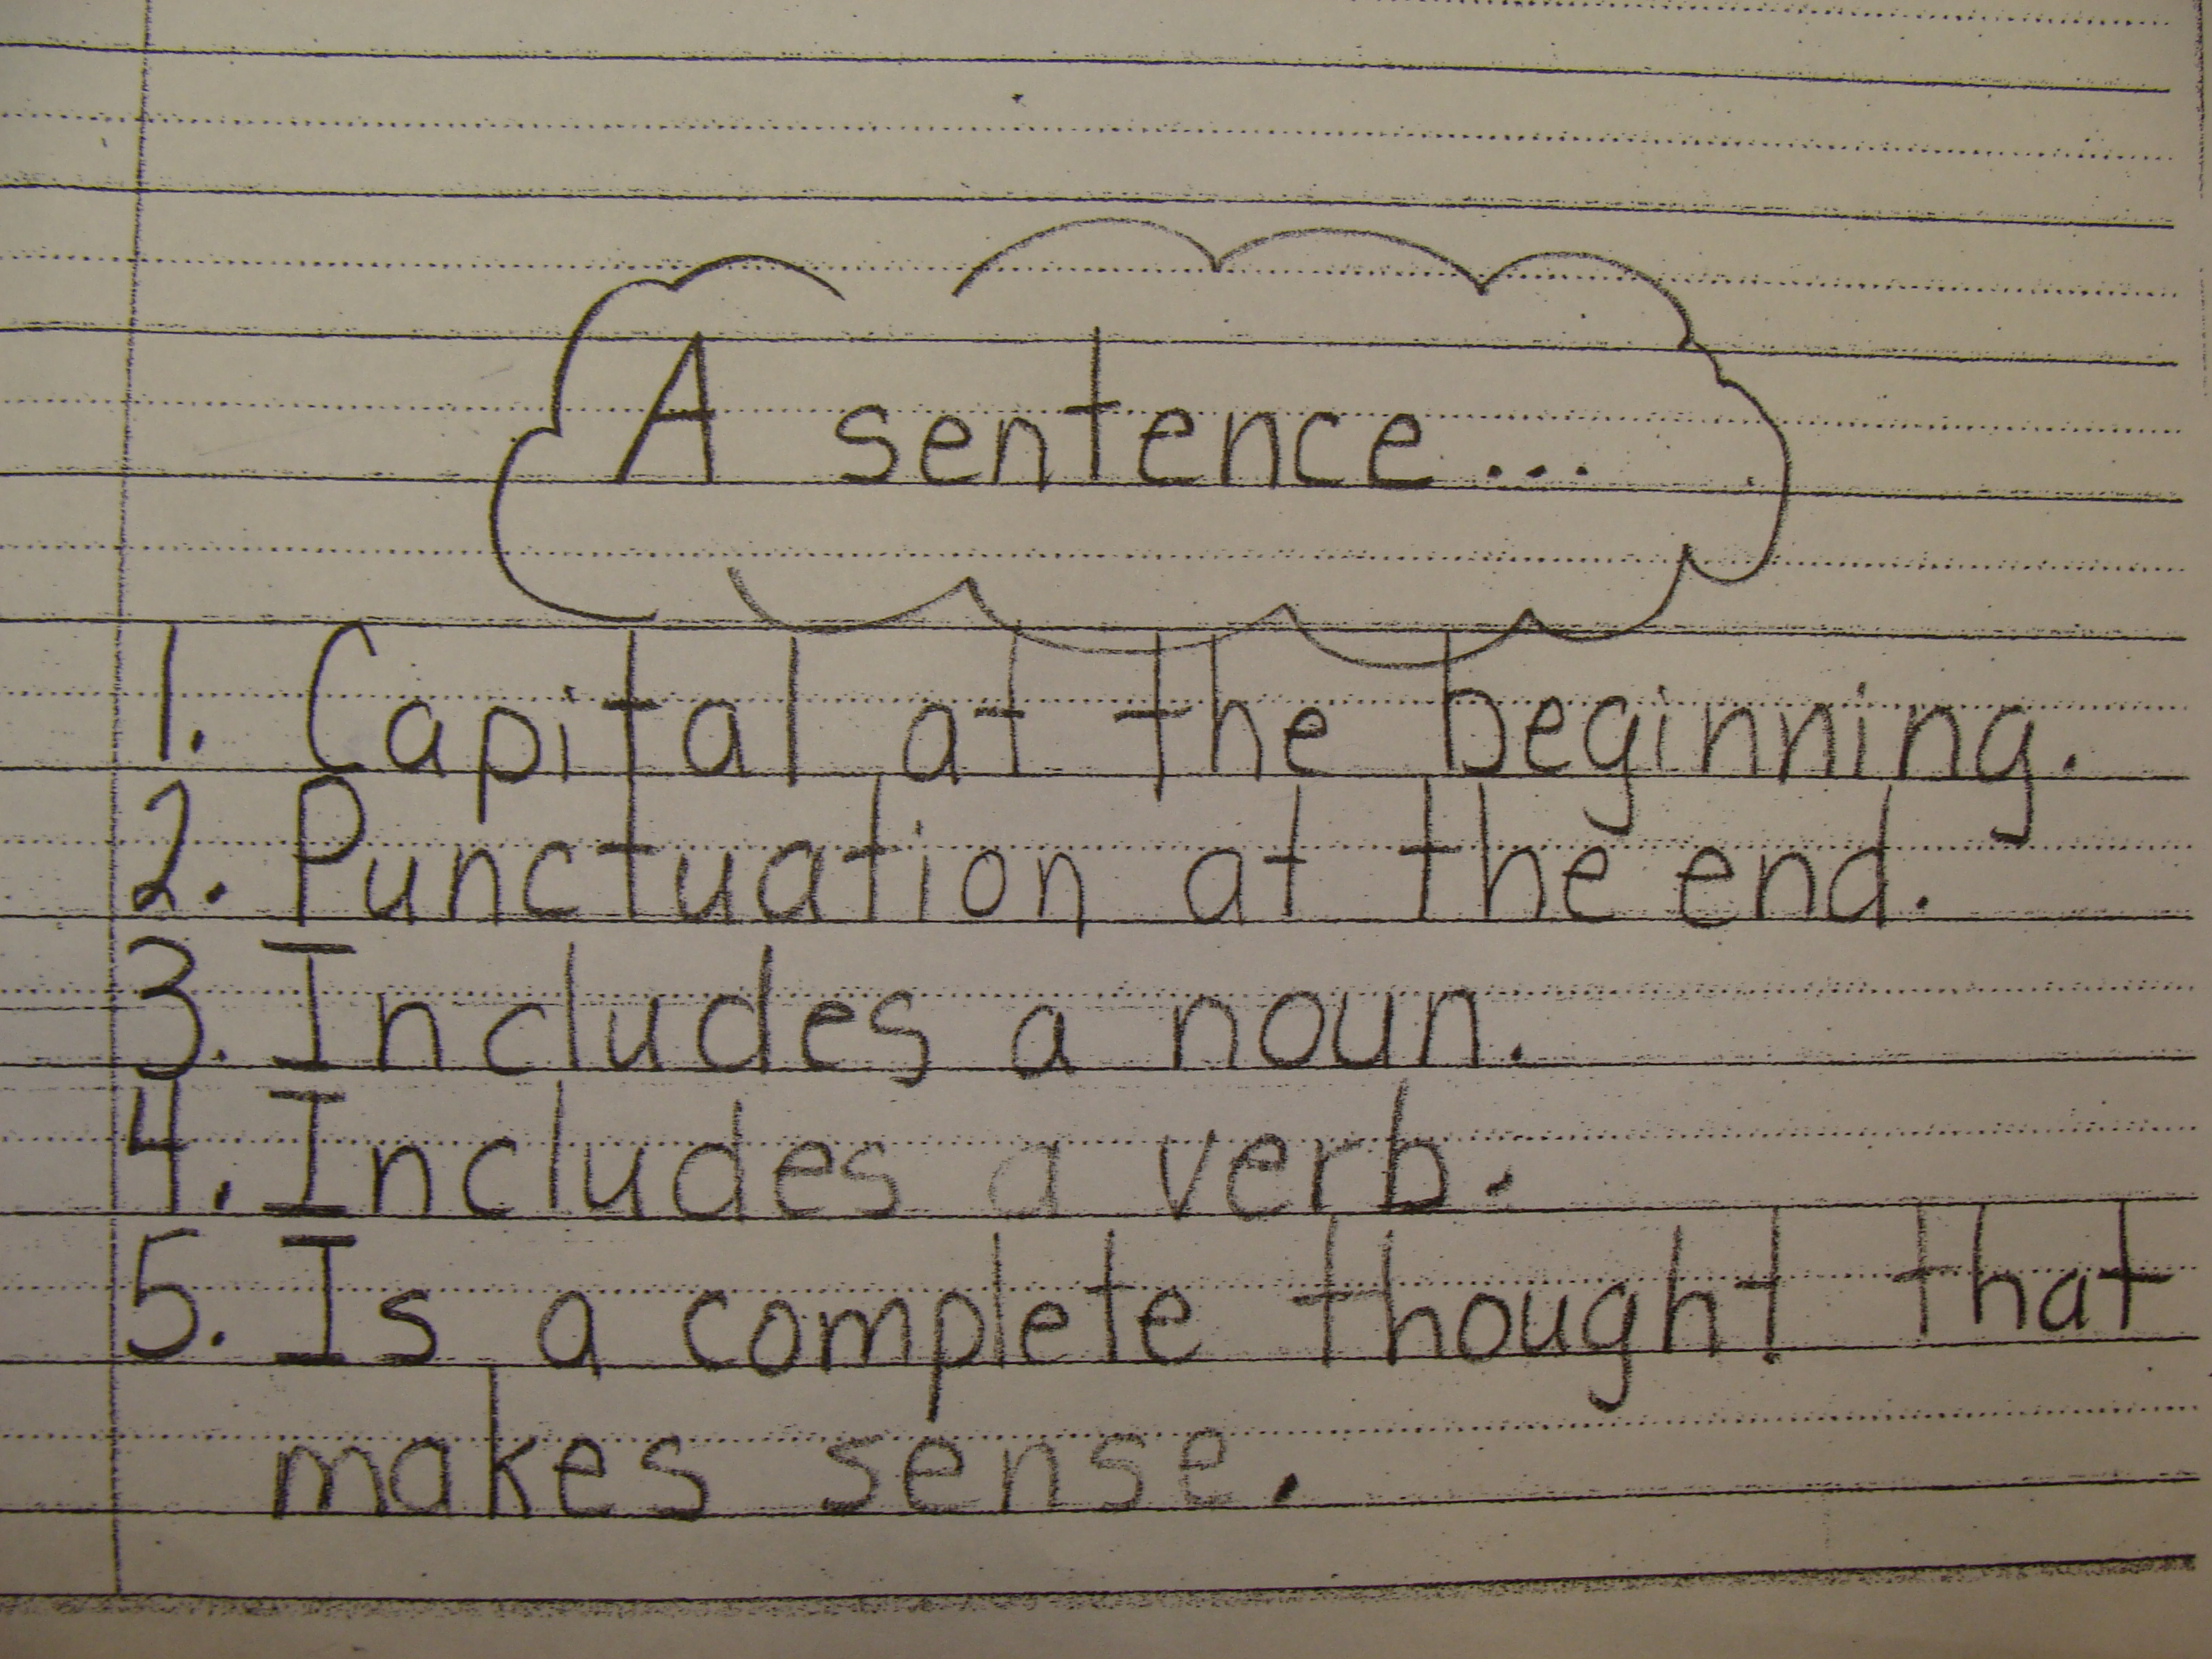 ... What Where and When sentence! The students think this is just AMAZING